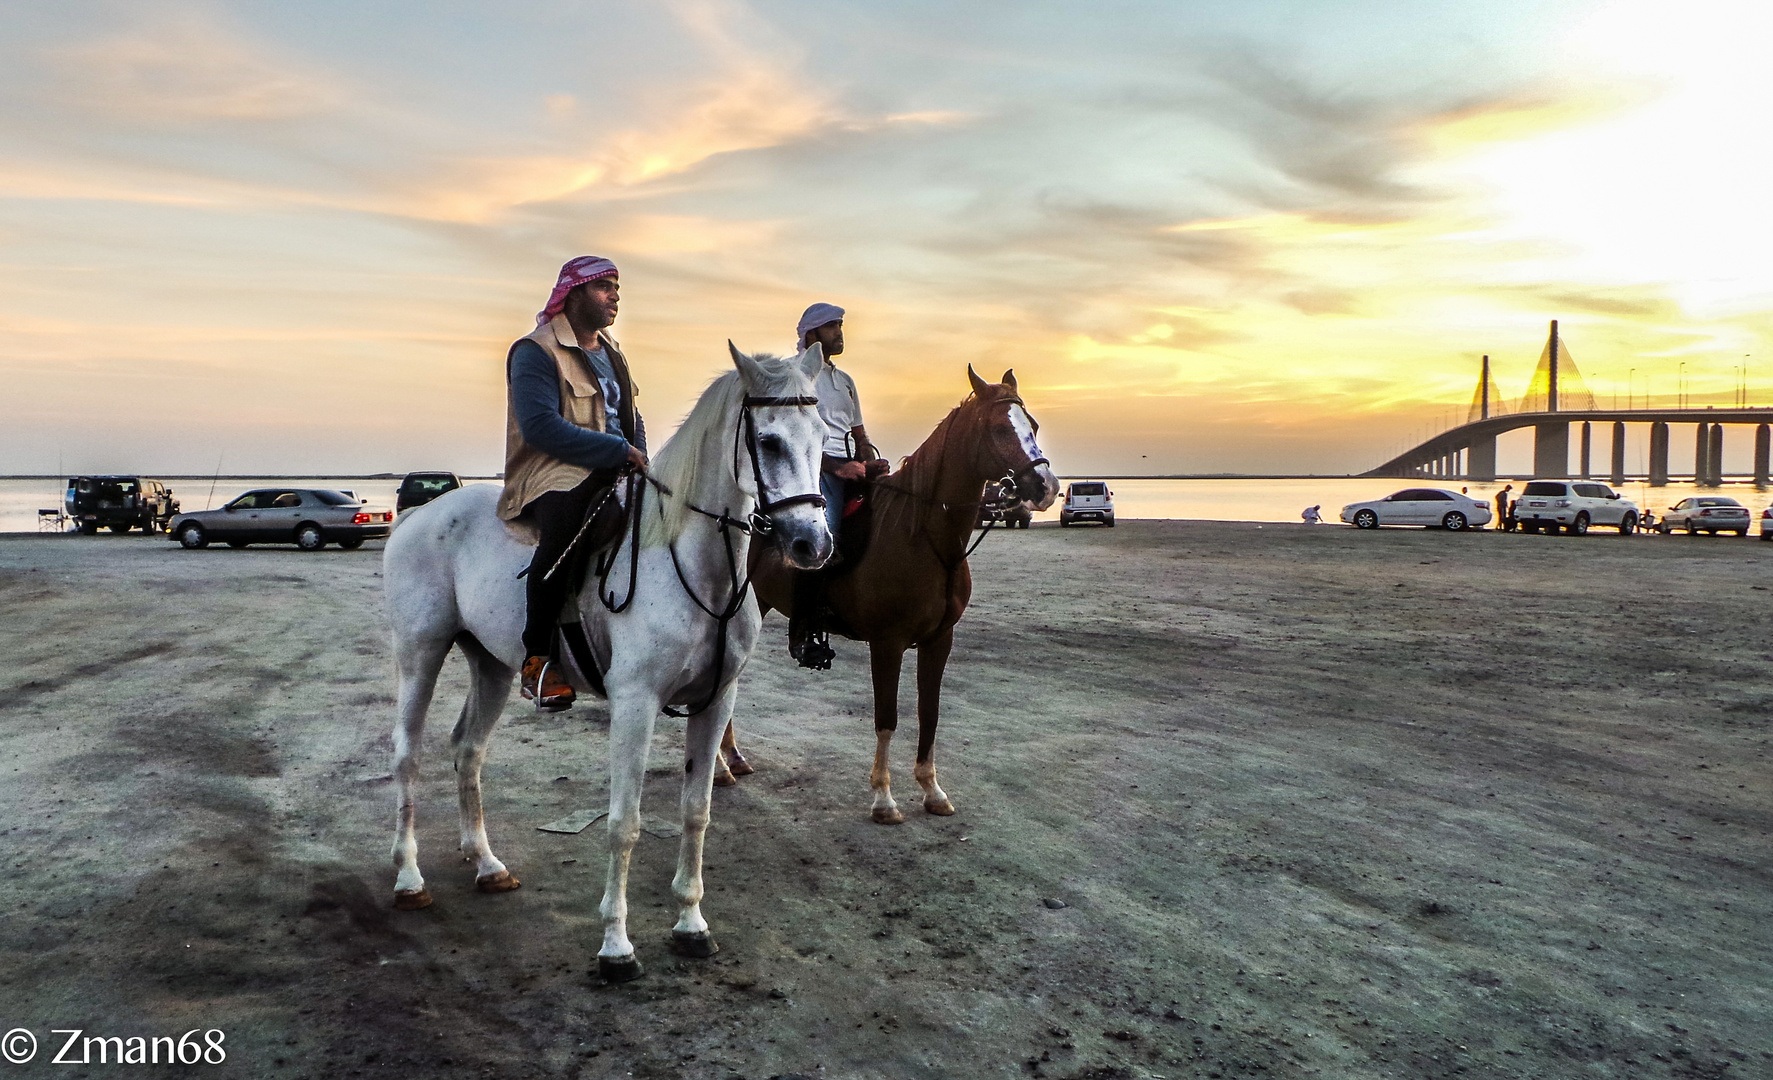 Locals on Horse Backs